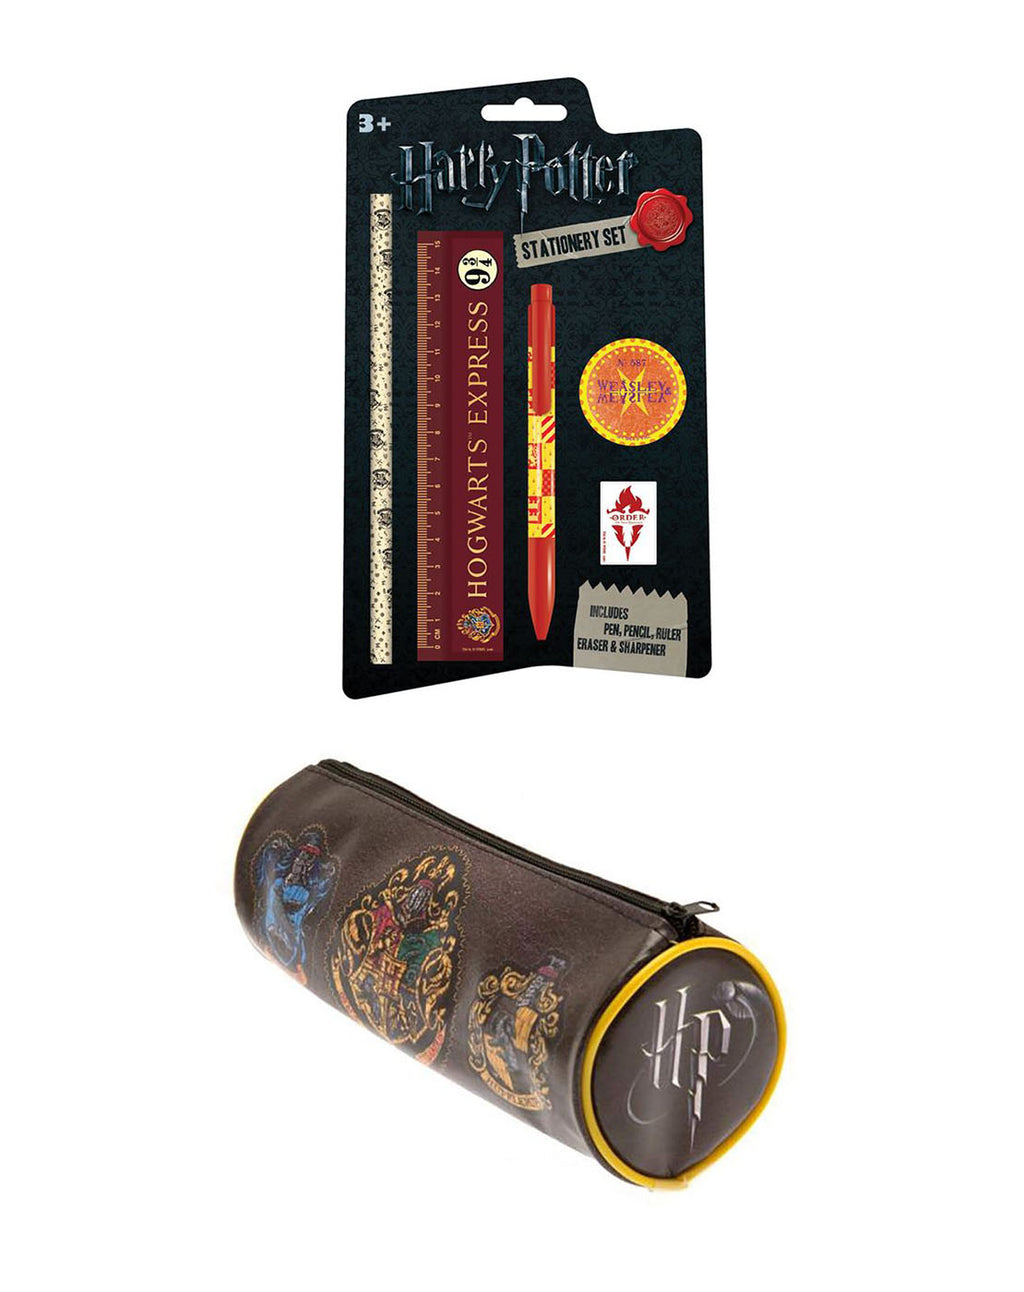 Harry Potter 5 Piece Stationary Pack and Hogwarts Pencil Case Set